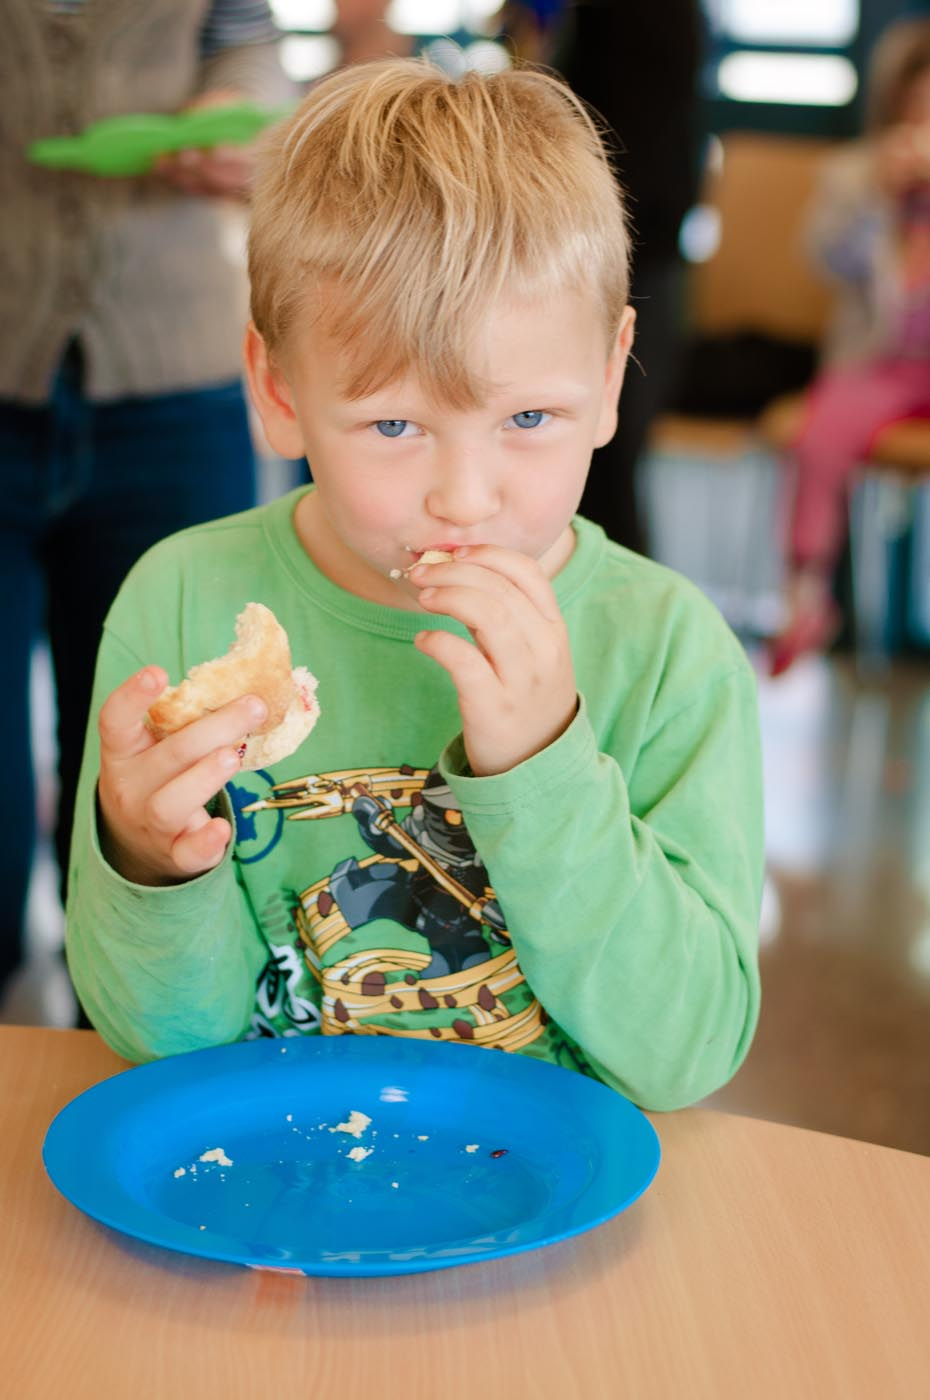 Photo showing a young boy sampling an item of food leaving crumbs on his plate - click to view larger image